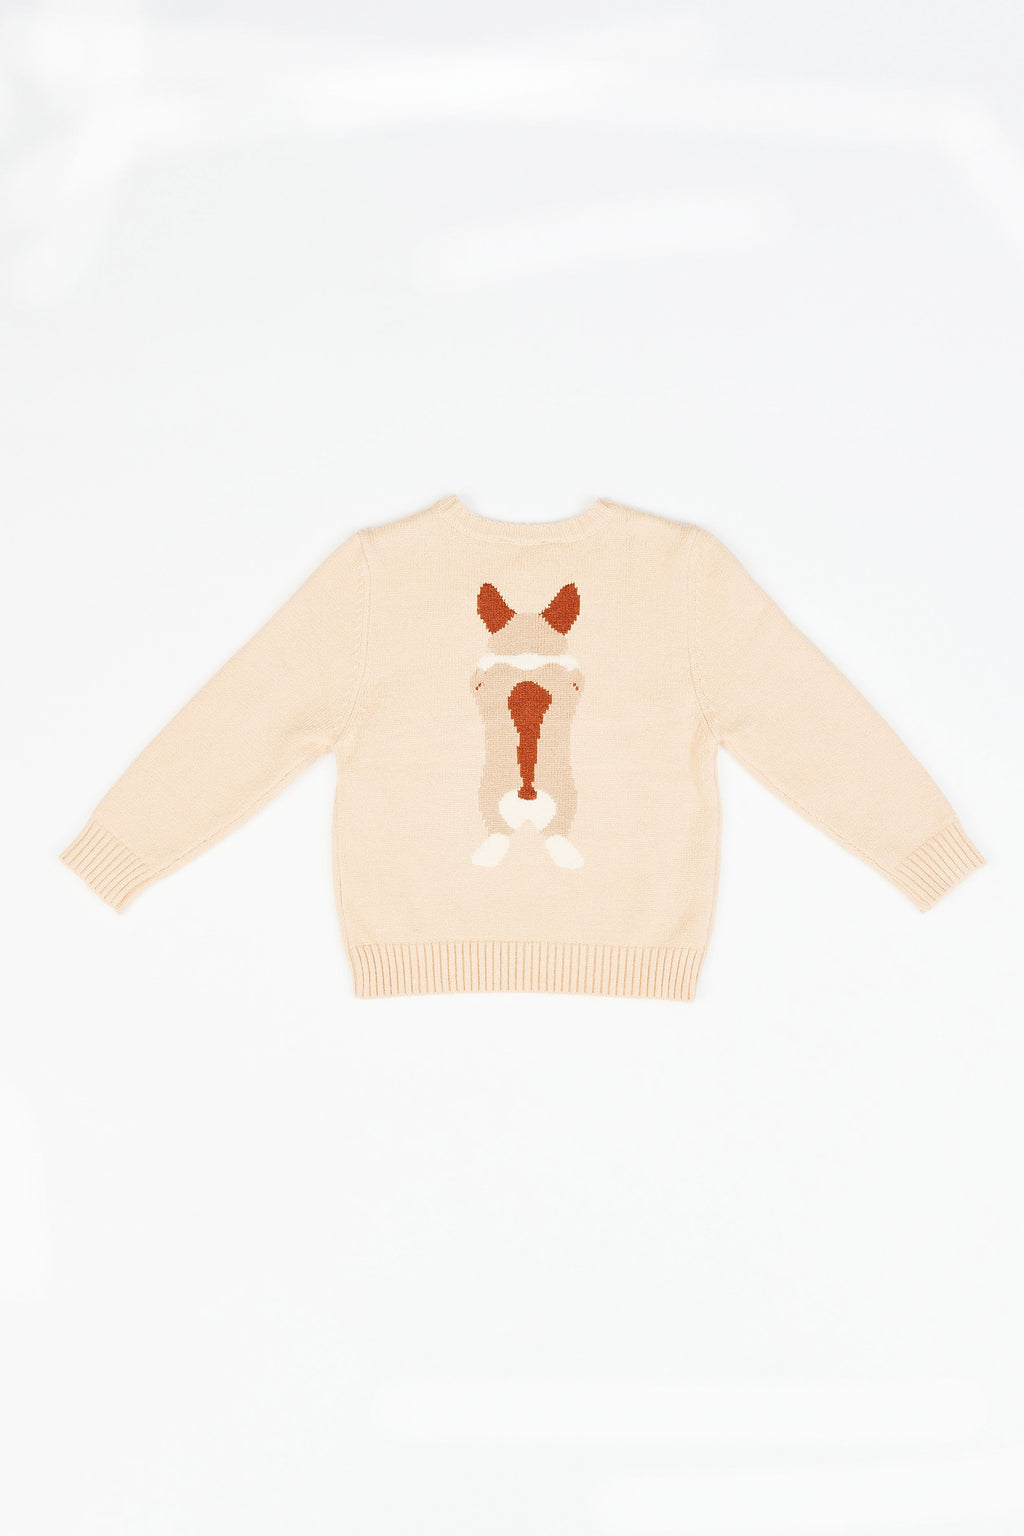 HAPPY PUPPY PULLOVER KNIT SWEATER